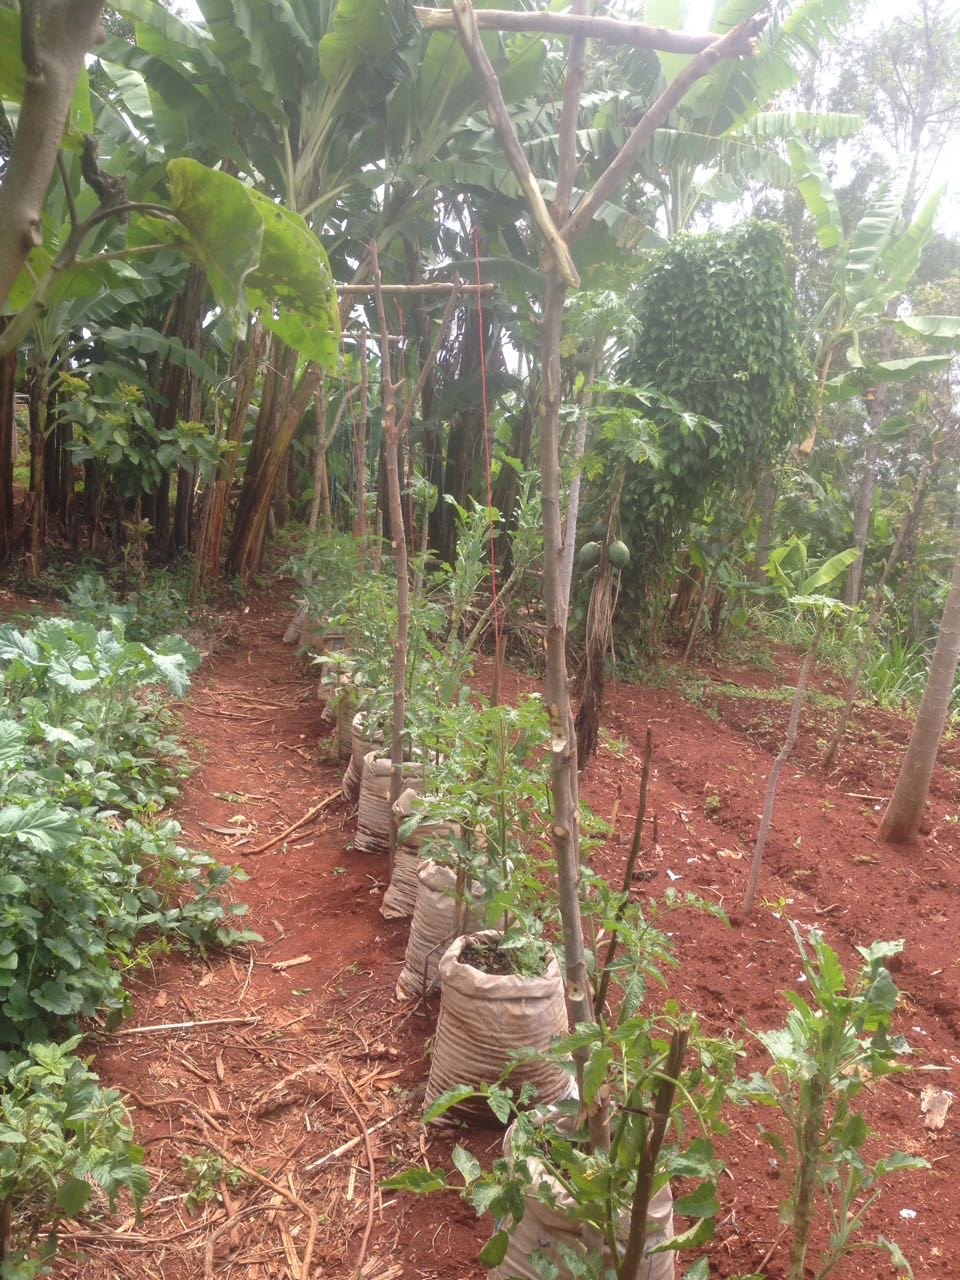 During a particularly hard season of blight, Reuben began rescuing his plants one by one by carefully bagging unaffected soil in potato sacks. When his project was successful, he helped several others in his village to save their plants as well!